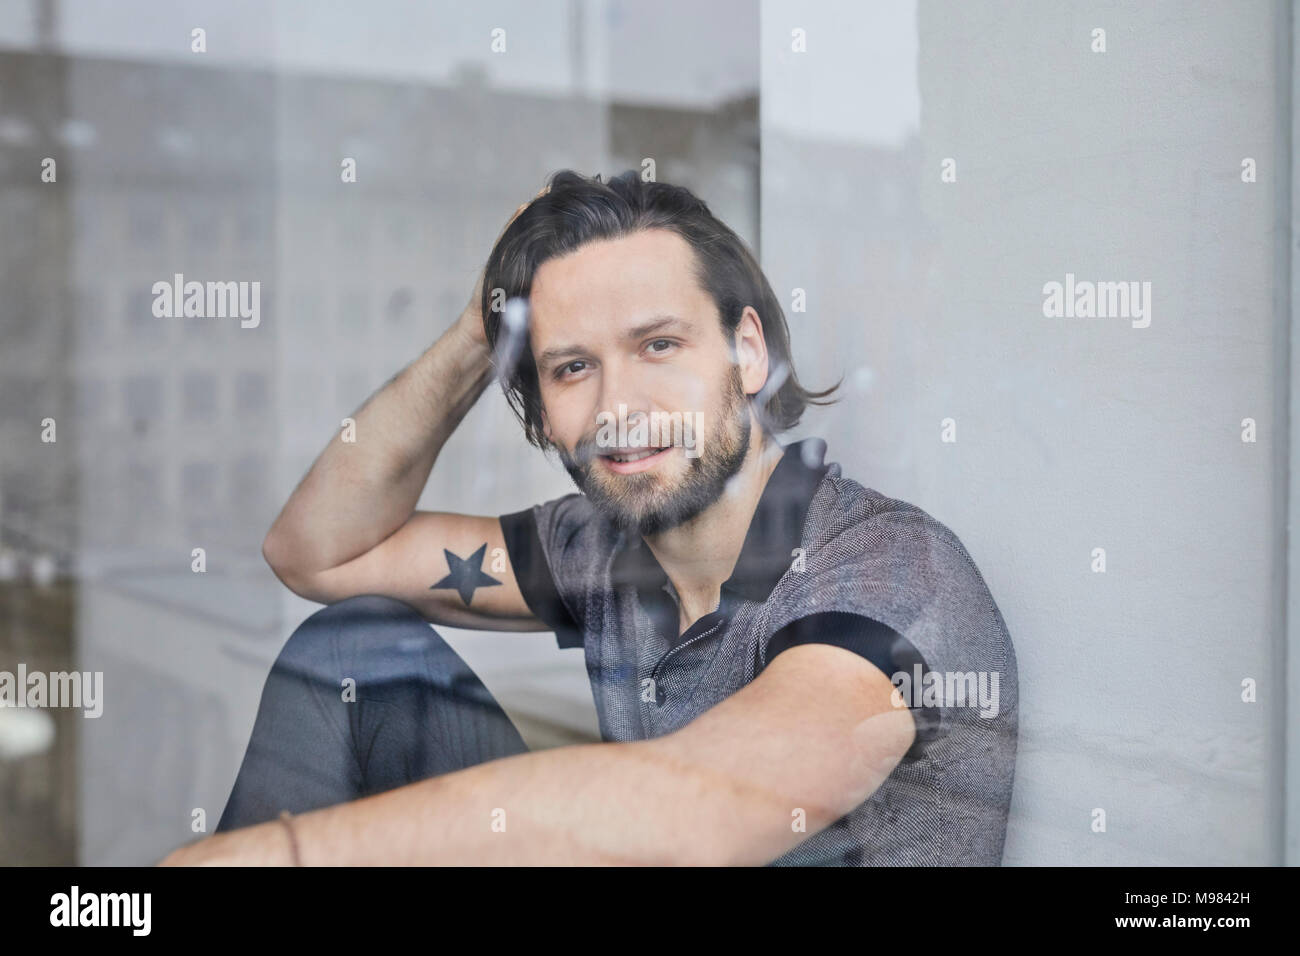 Portrait of smiling man looking out of window - Stock Image